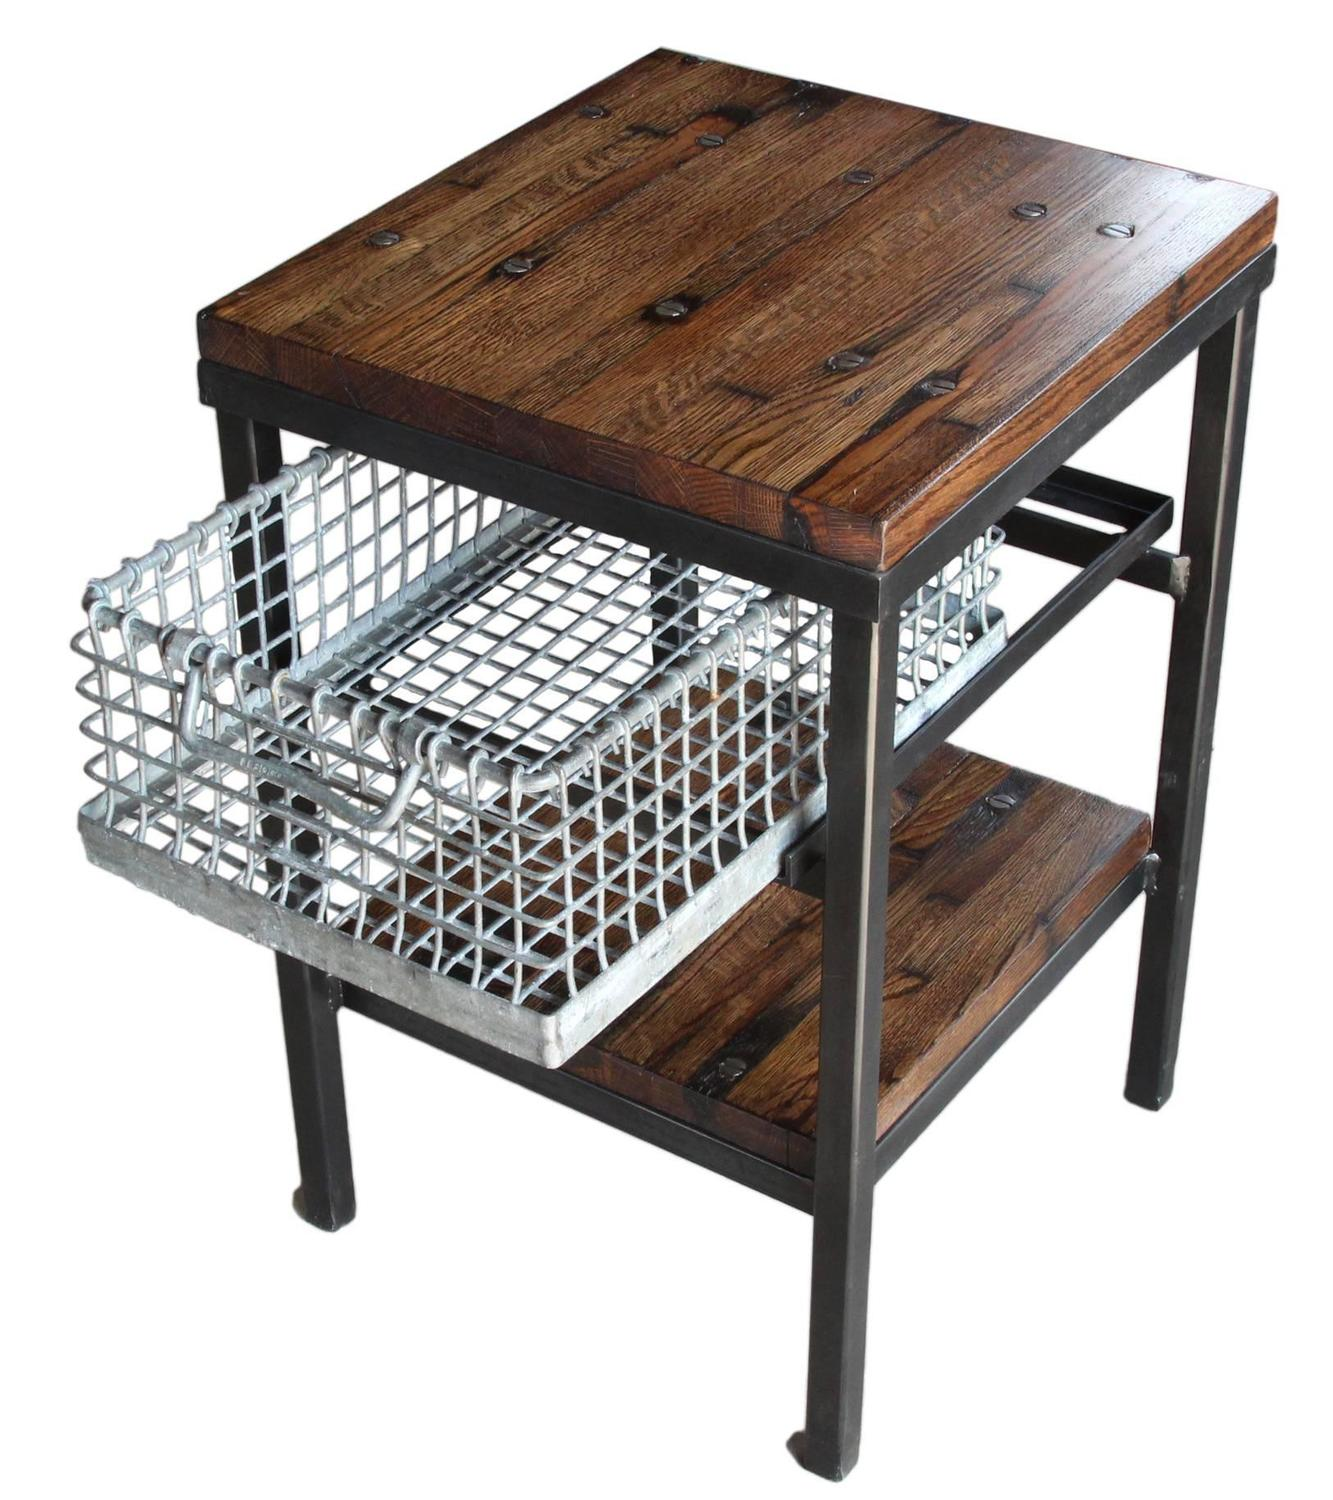 galvanized storage basket nightstand end table with shelf antique accent baskets small teal argos bedroom furniture glass stacking tables hand painted porcelain lamps white garden